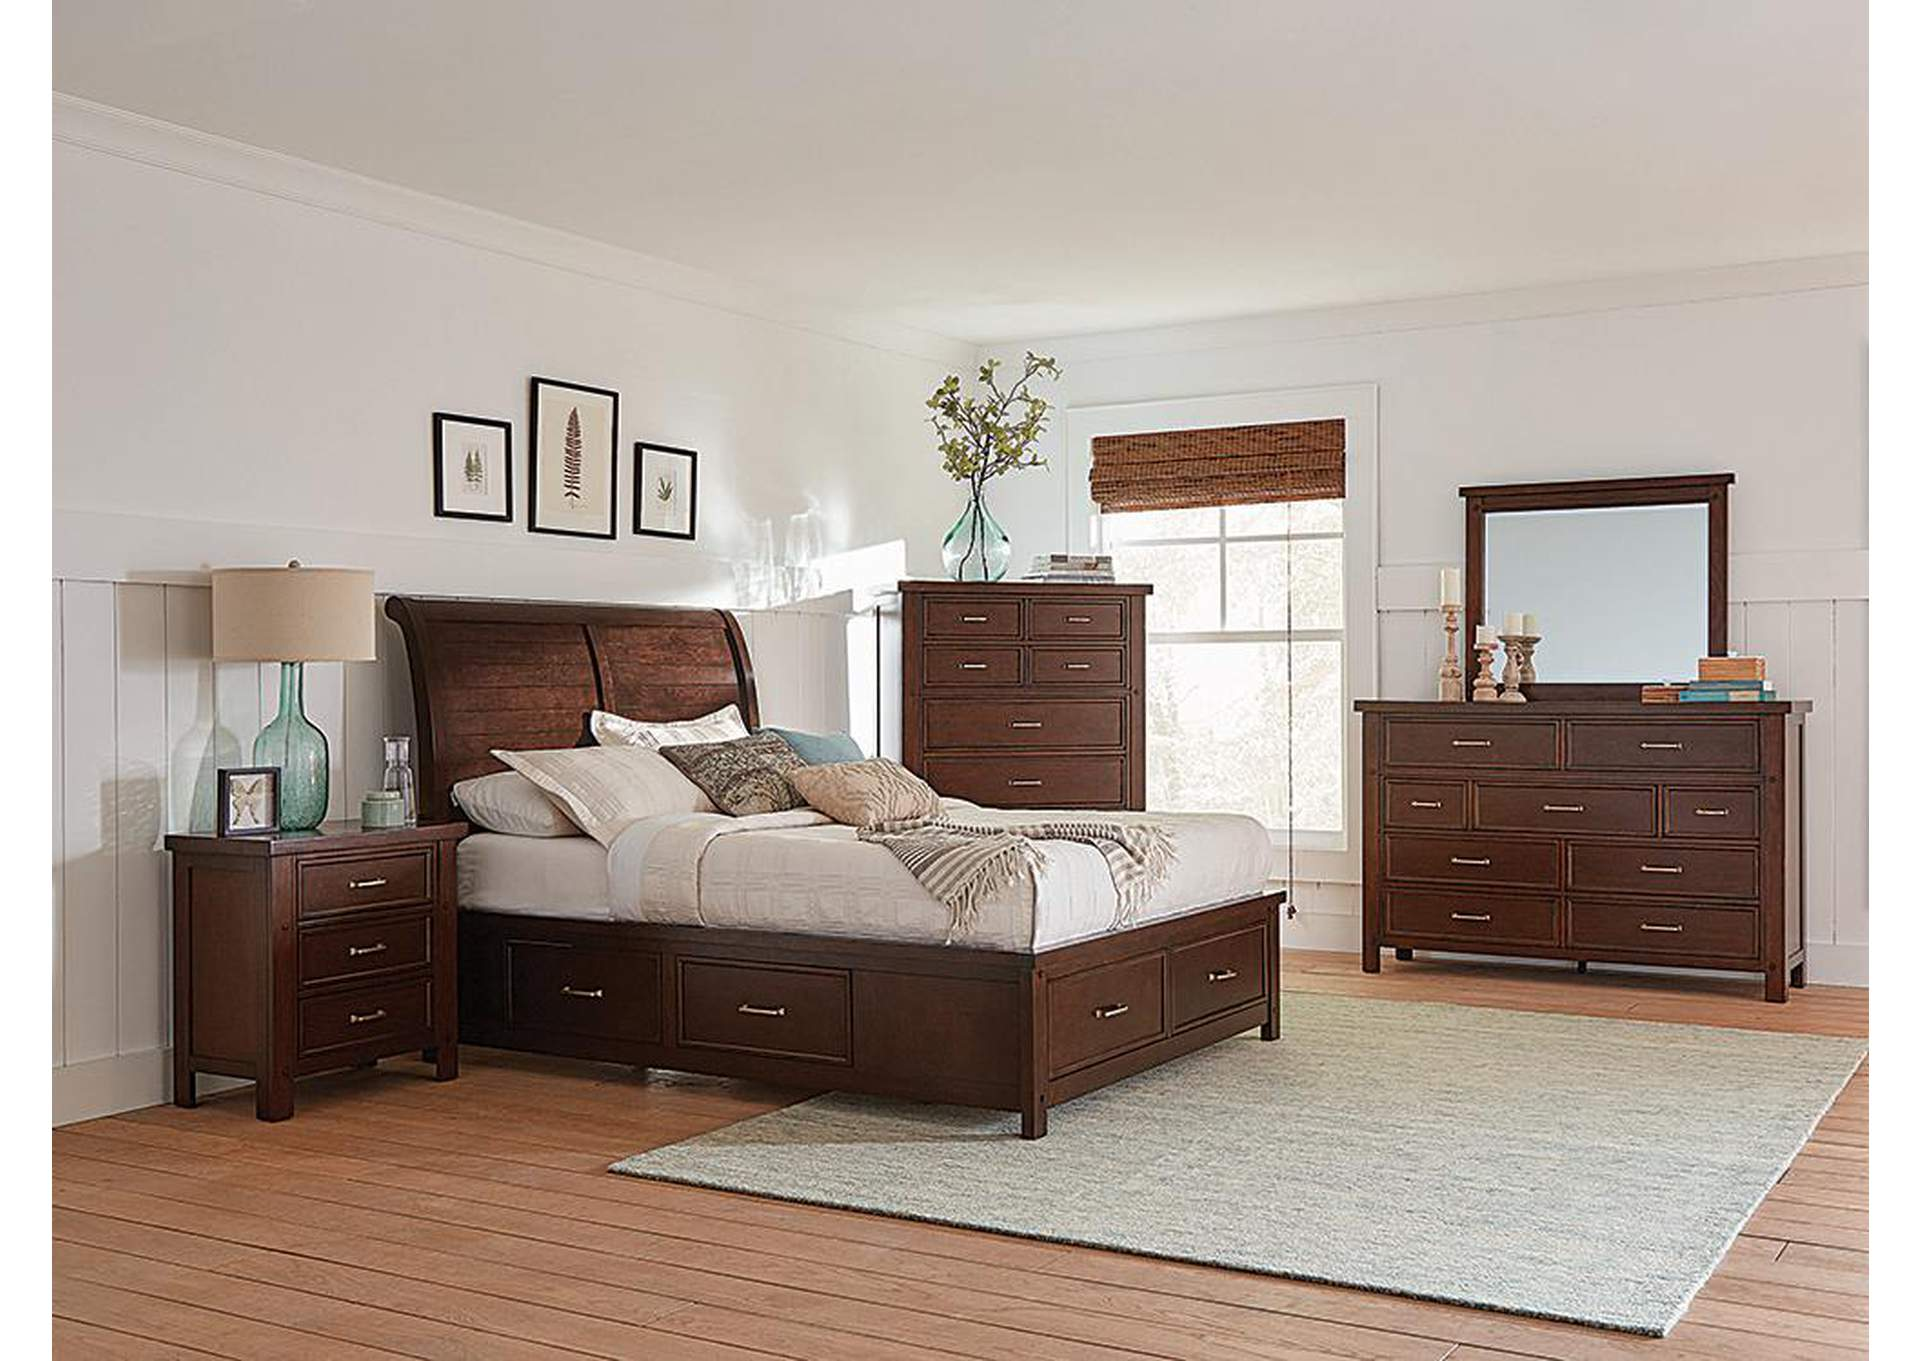 Cedar Queen Bed,Coaster Furniture